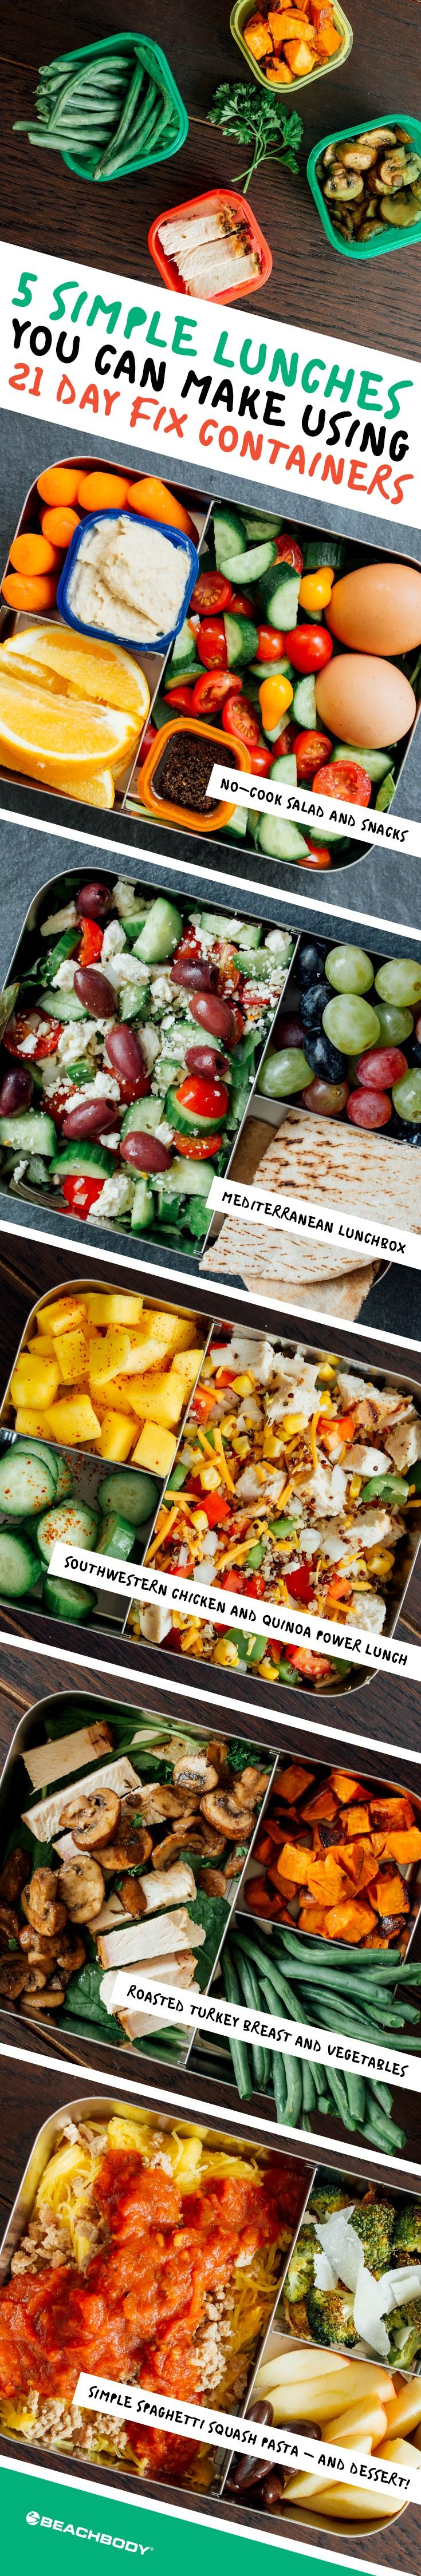 It's lunchtime! These lunches show exactly how you can build a balanced meal in no time using 21 Day Fix containers. They use a combination of raw and easy-to-cook ingredients that make meal prep fast. // meal prep // meal plan // meal planning // bento box // healthy eating // eat clean // clean eating // fresh food // lunch // lunchtime // snacks // Beachbody // Beachbody.com